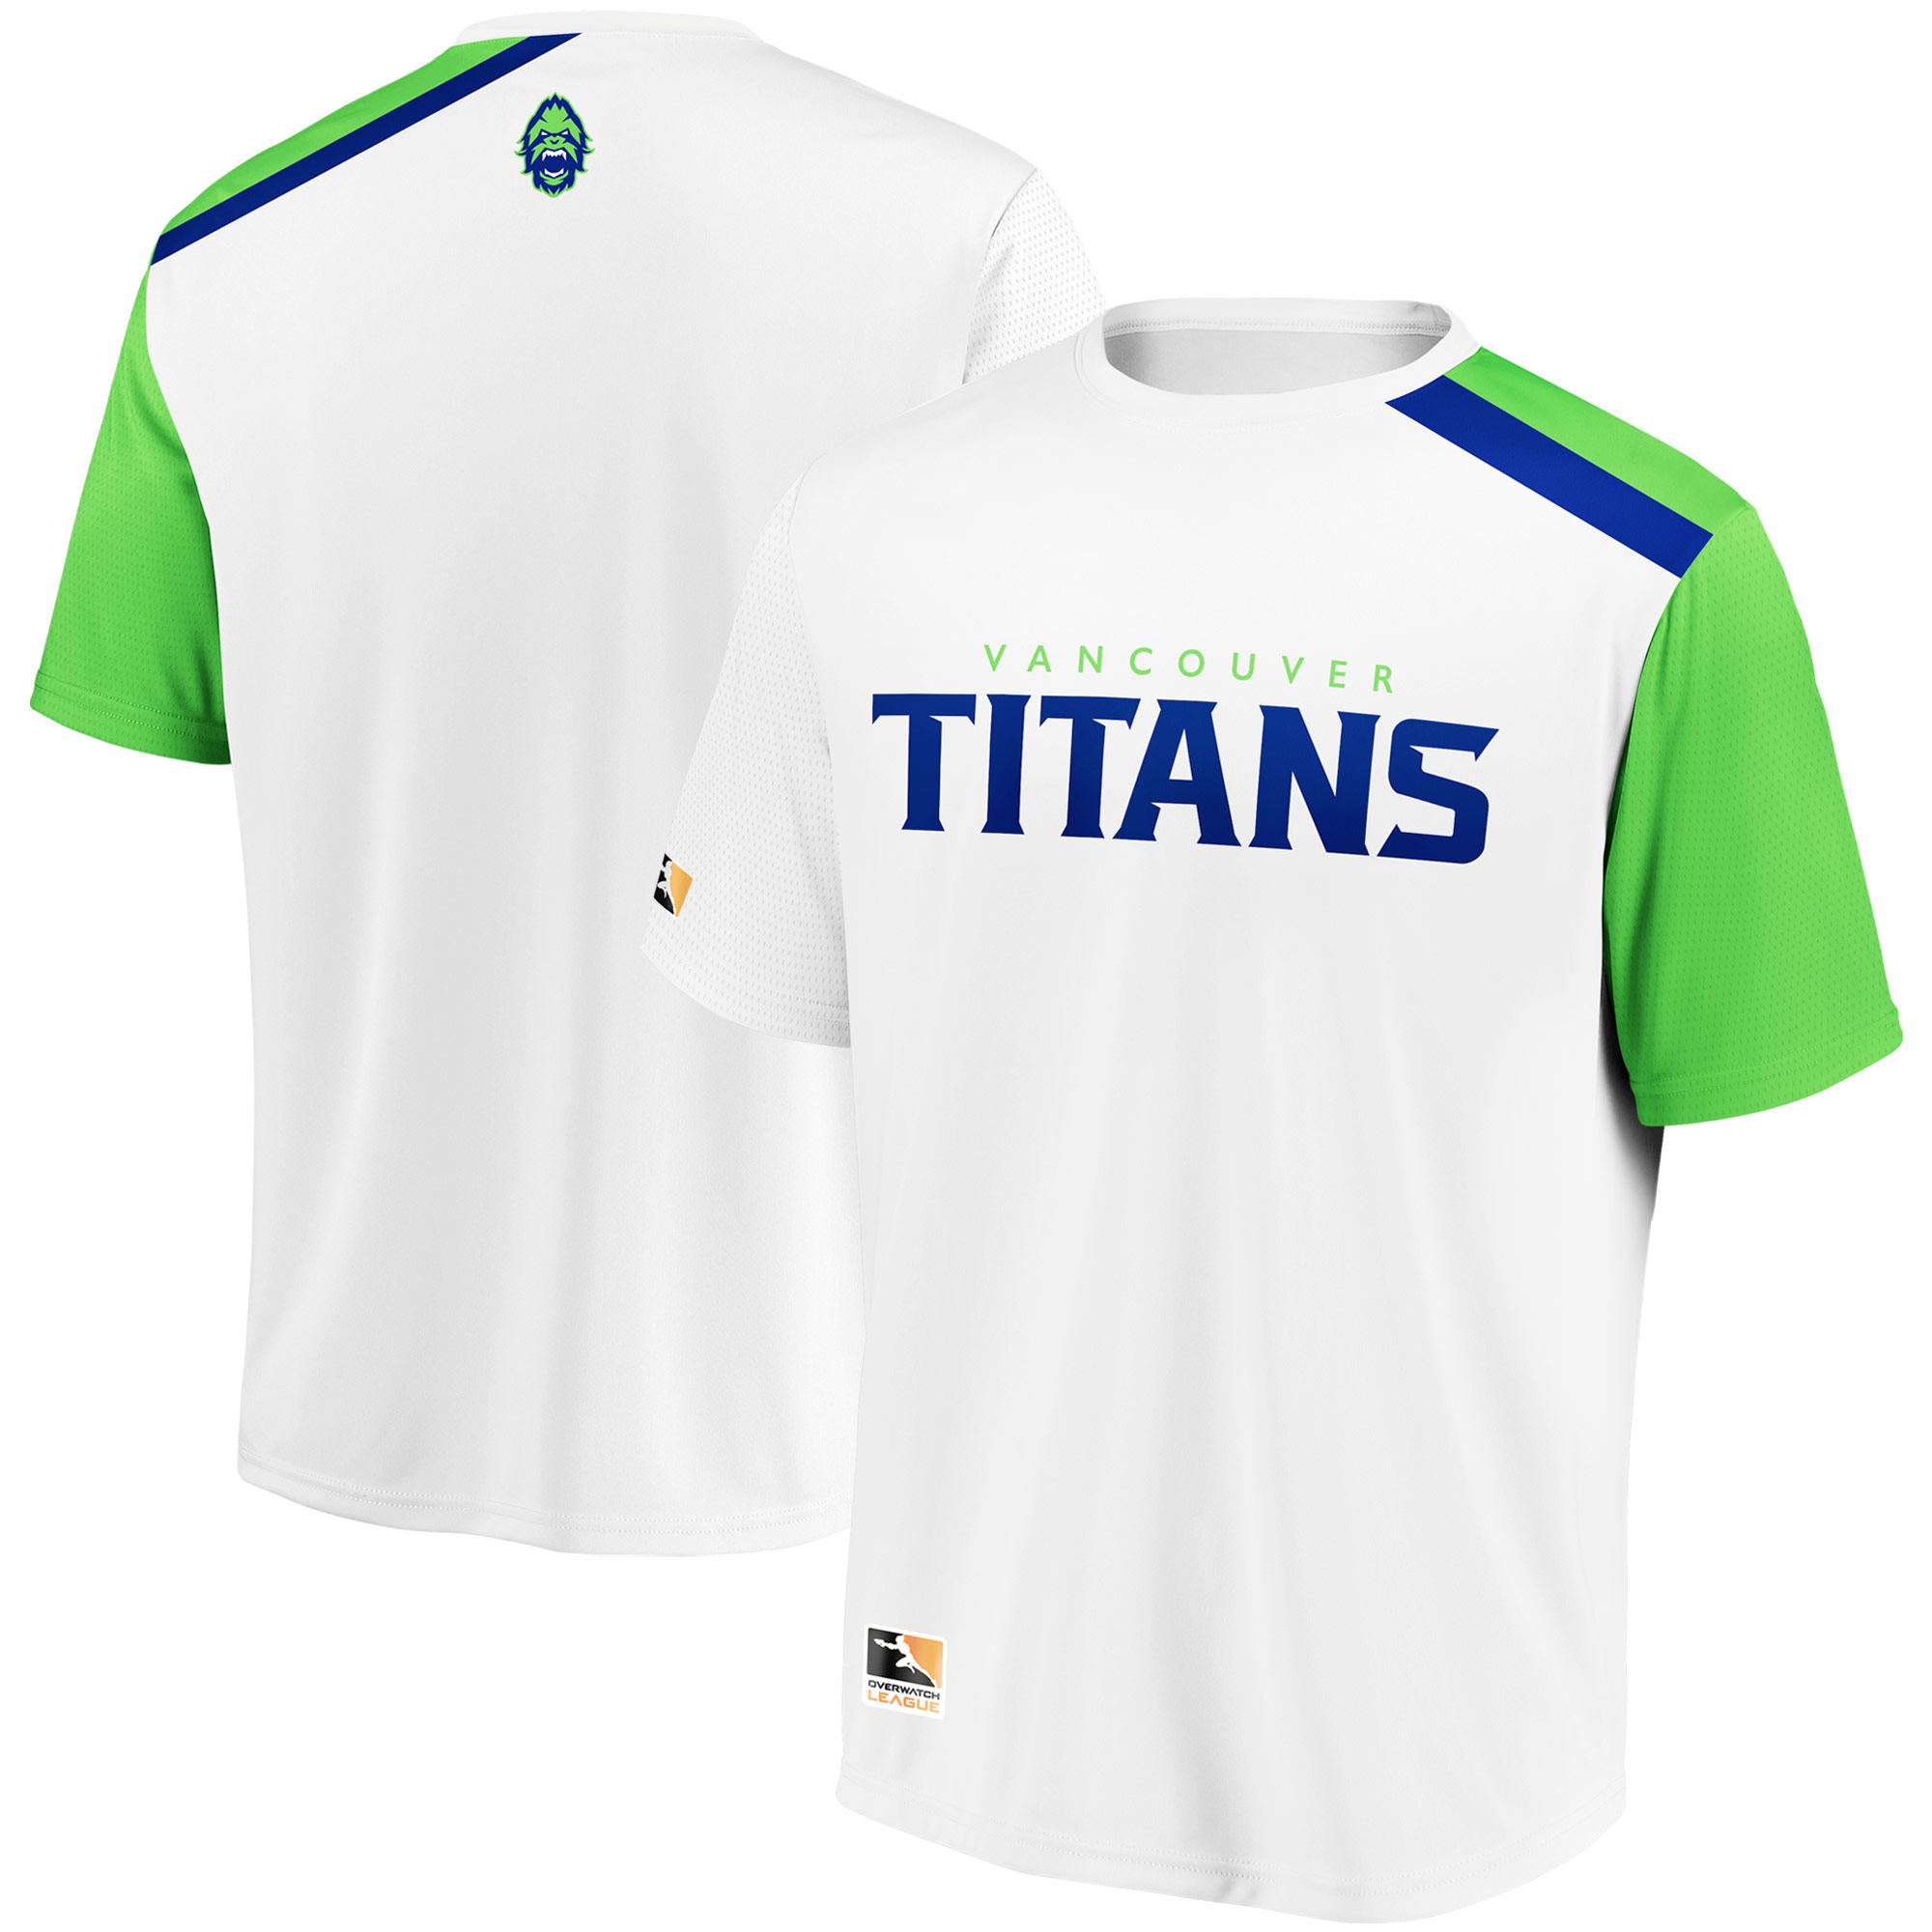 Vancouver Titans Overwatch League Replica Away Jersey - White